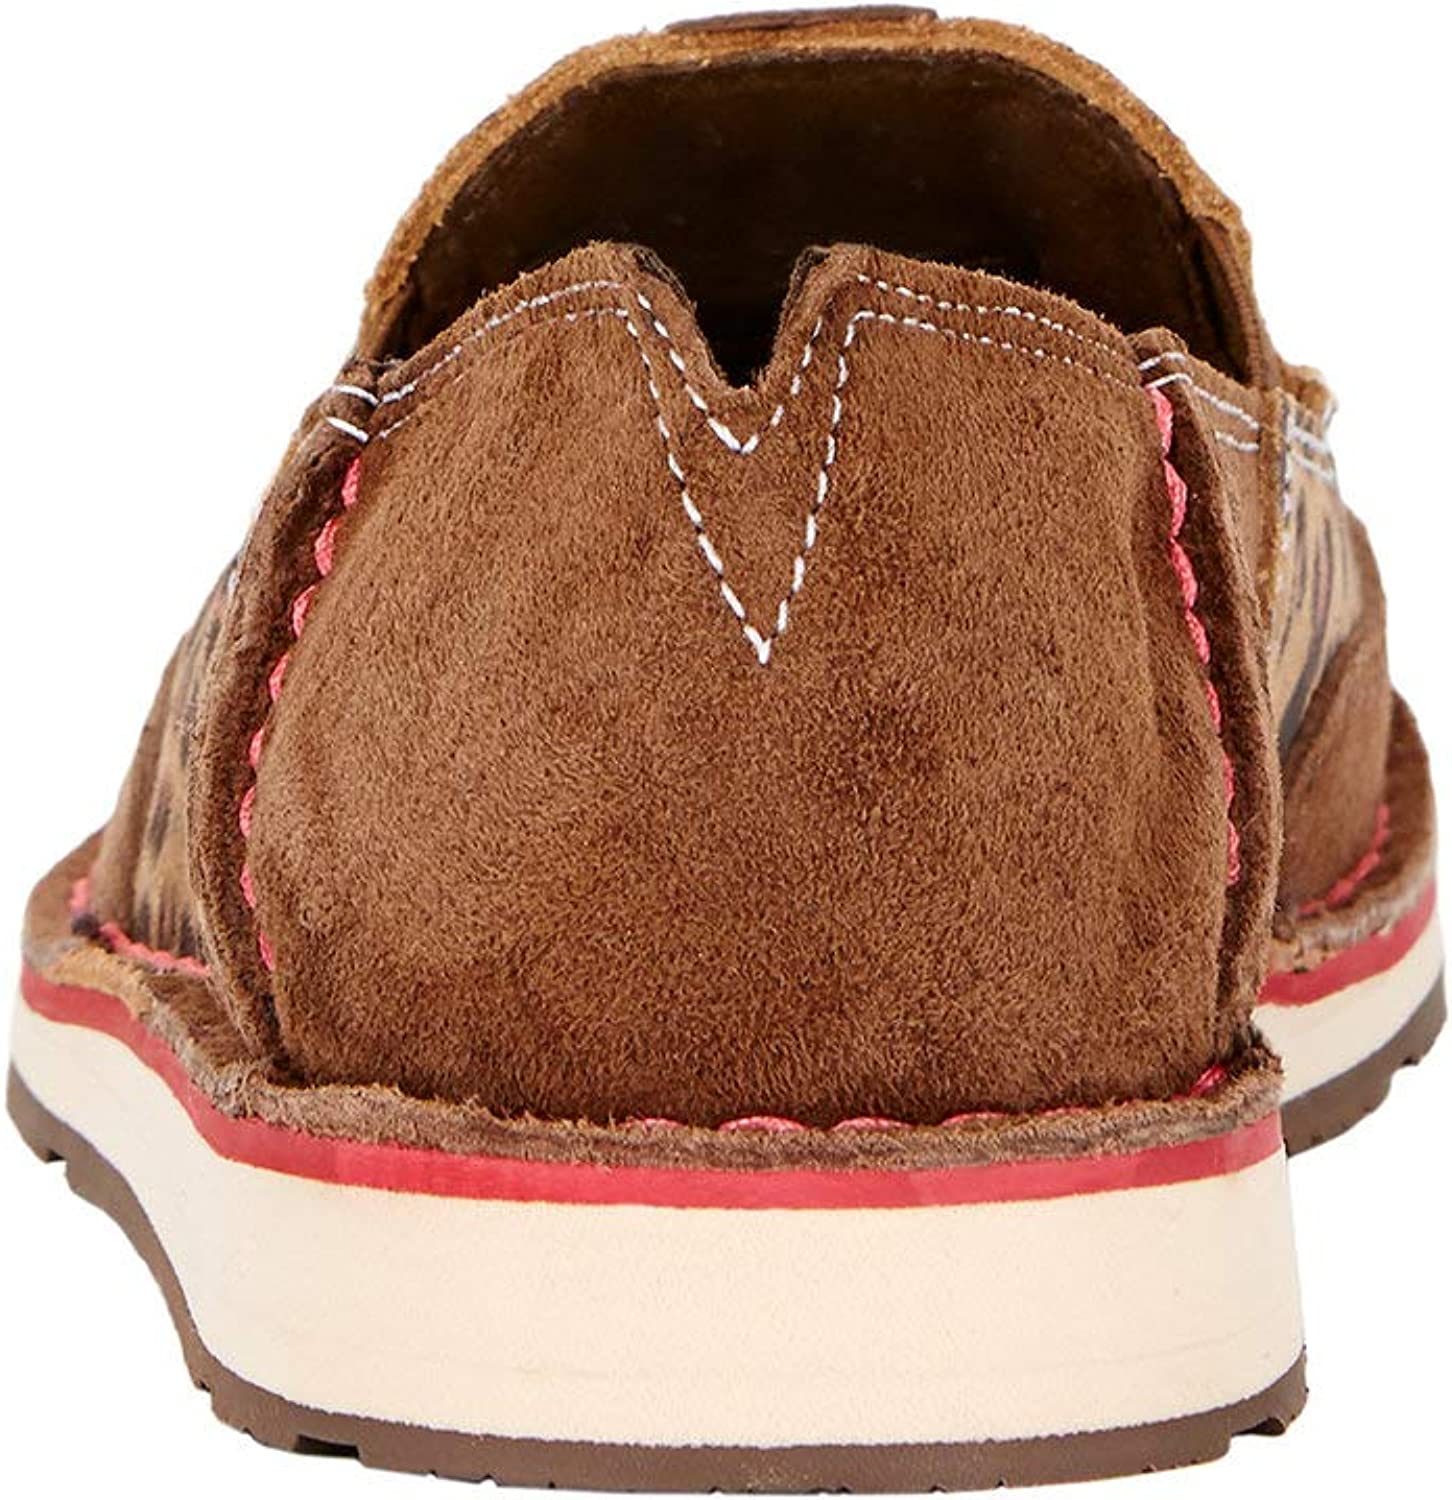 Ariat Women's Cruiser Slip-on Shoe Casual Antique Mocha Washed Suede